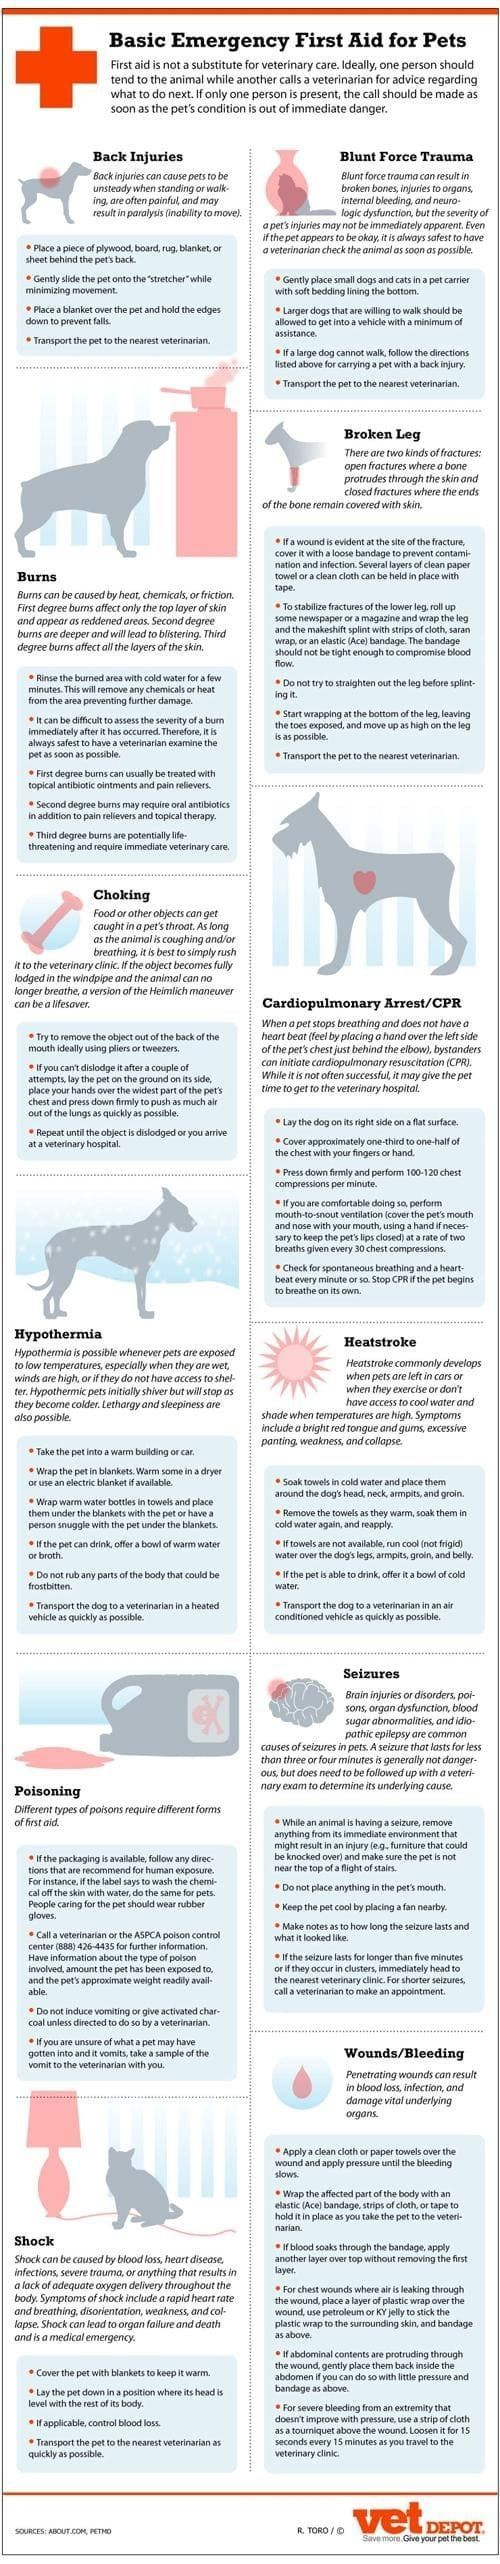 Basic First Aid Emergency For Pets - How to help your pet heal in the event of Shock, Burns, Poison, Blunt Force Trauma, Wounds, Heat Stroke, Seizures and more.